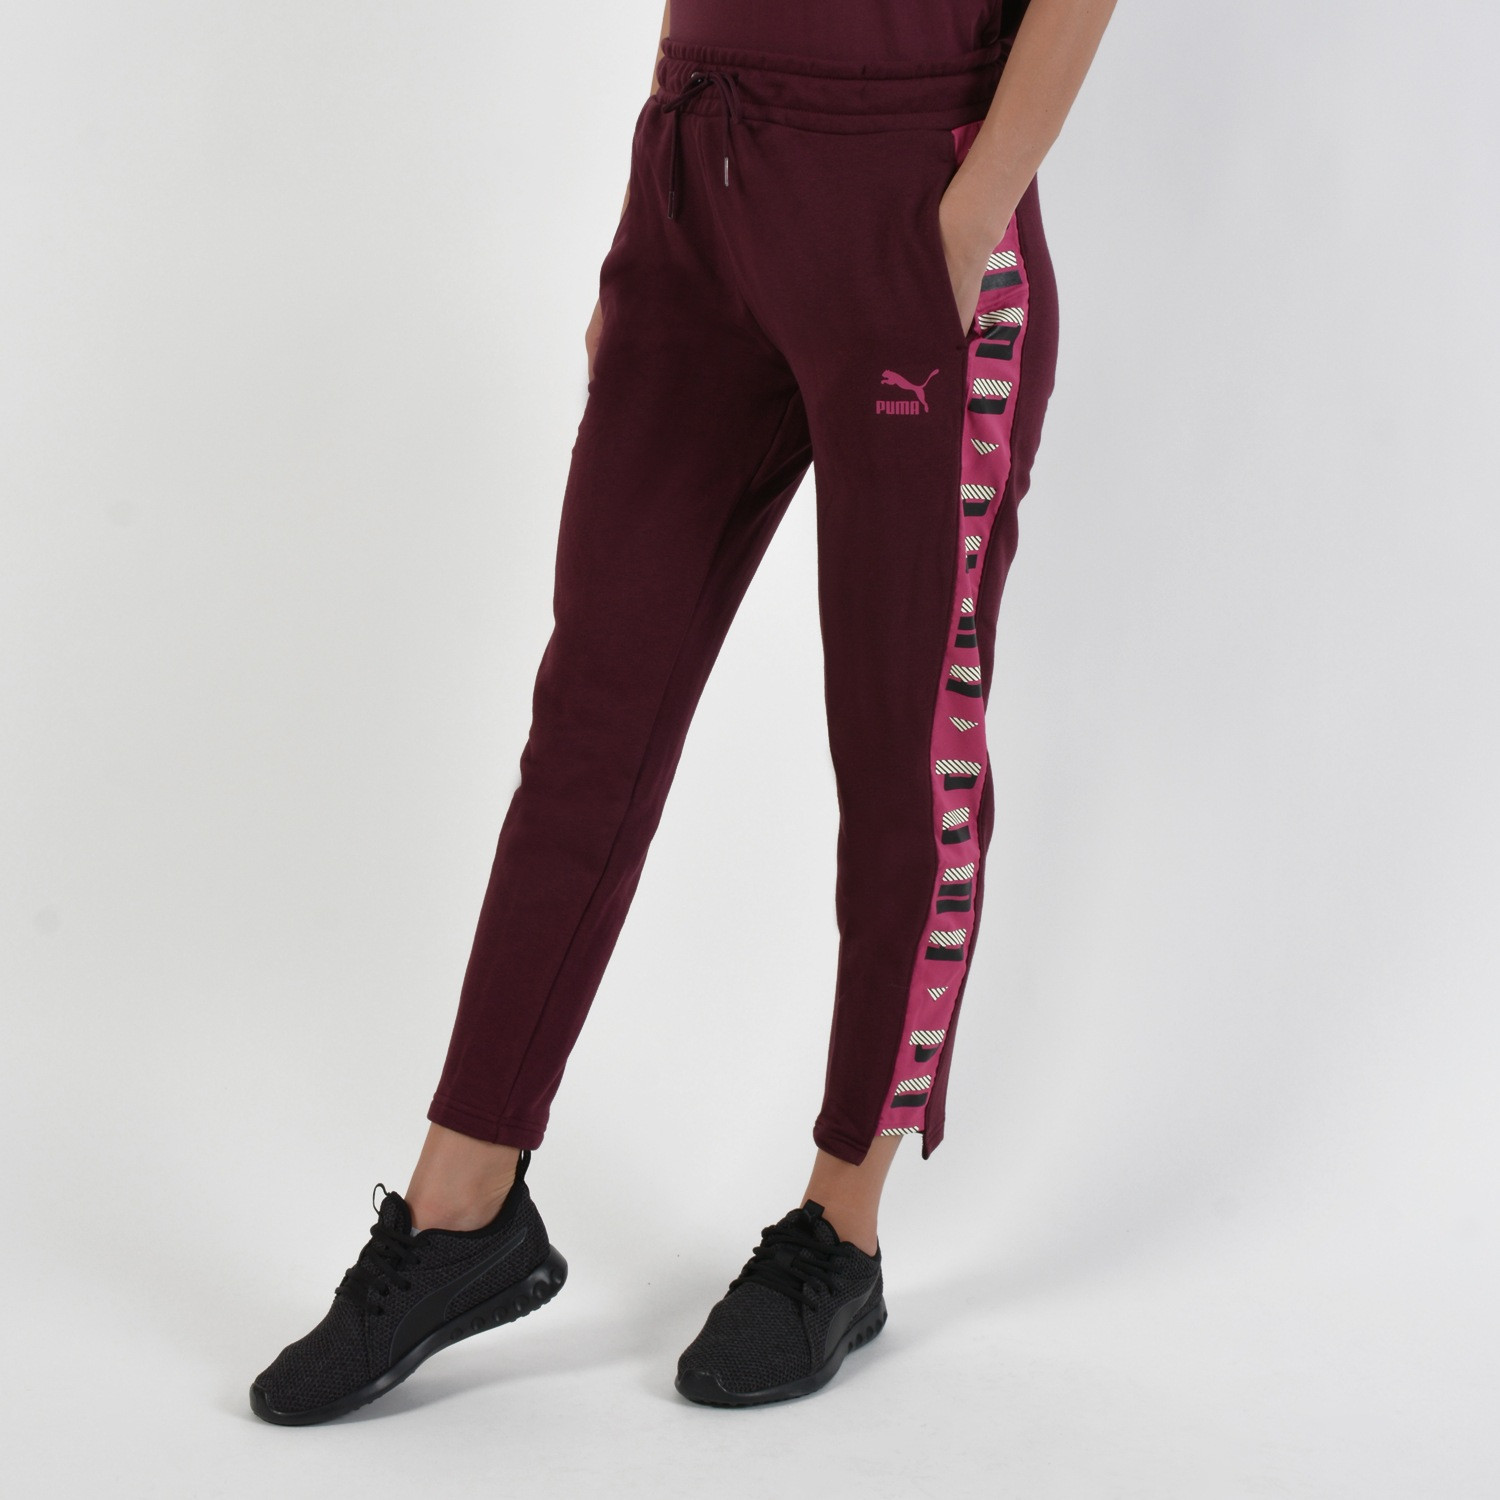 Puma Revolt Sweat Pant CL. T